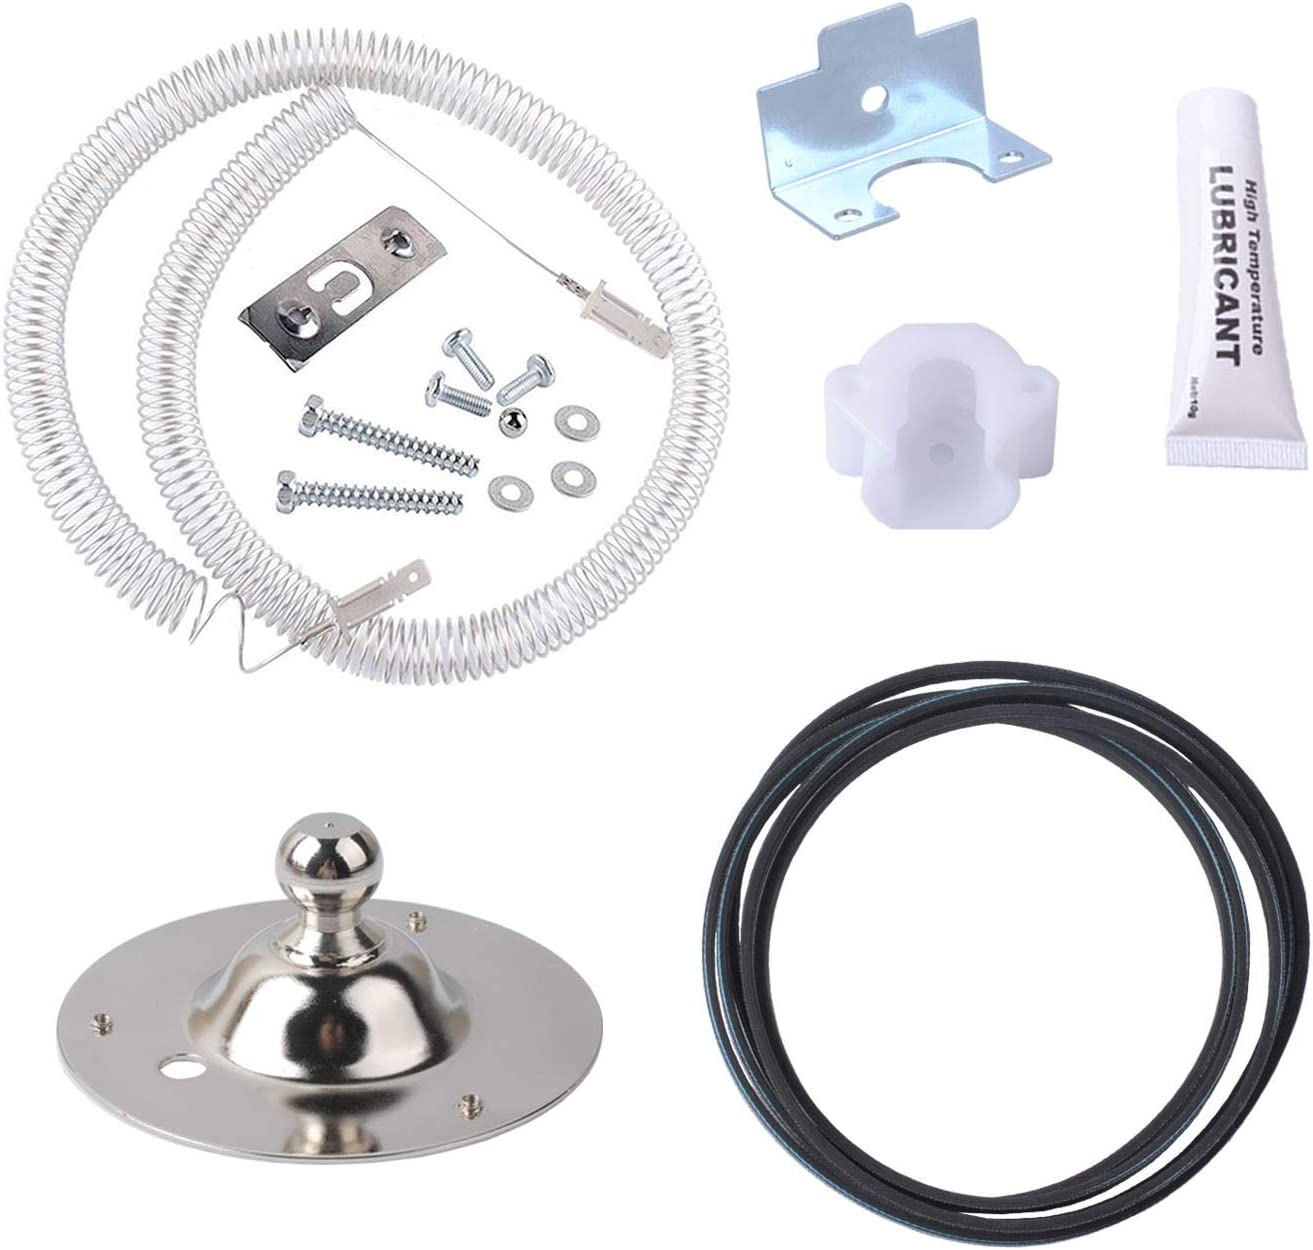 5303281153 Rear Bearing Kit for Tappan, Sears, Kenmore, Frigidaire AP2142648, EA451032, PS459829 with 131553900 Dryer Heating Element Coil, 134503600 Dryer Drum Belt